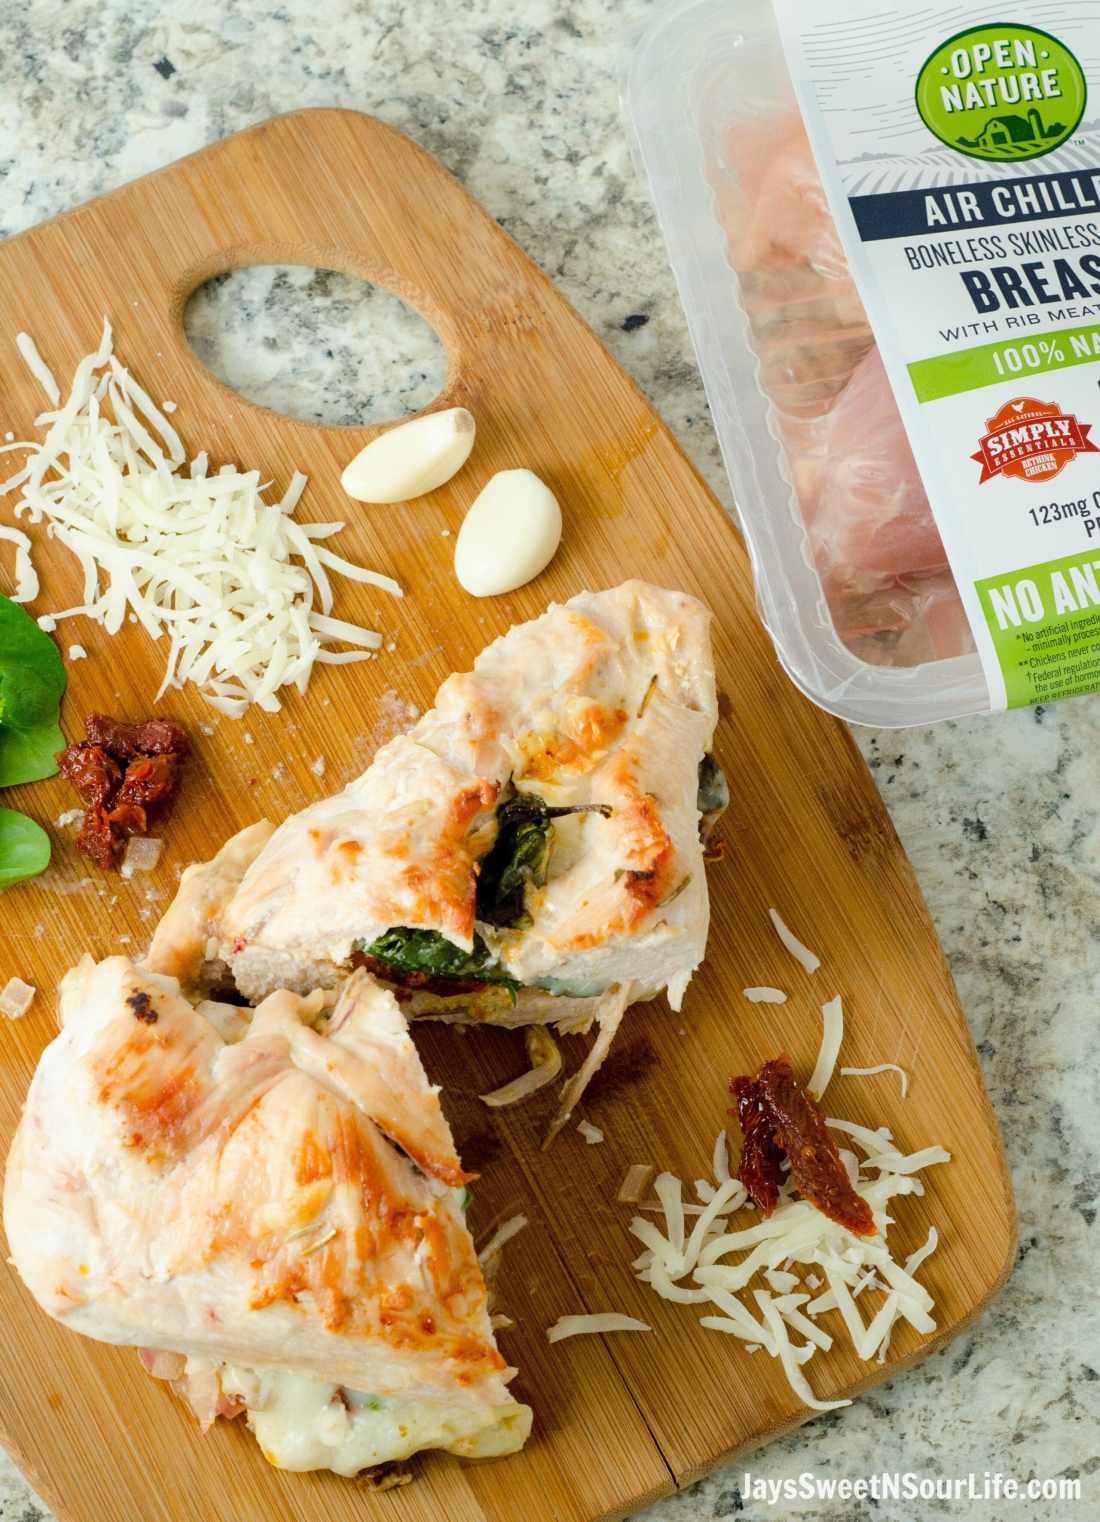 Dinner in under 30 minutes is made possible with this Sundried Tomato, Spinach and Cheese Stuffed Chicken. Made with simple Ingredients and a new Air Chilled Chicken product from Natures Promise.